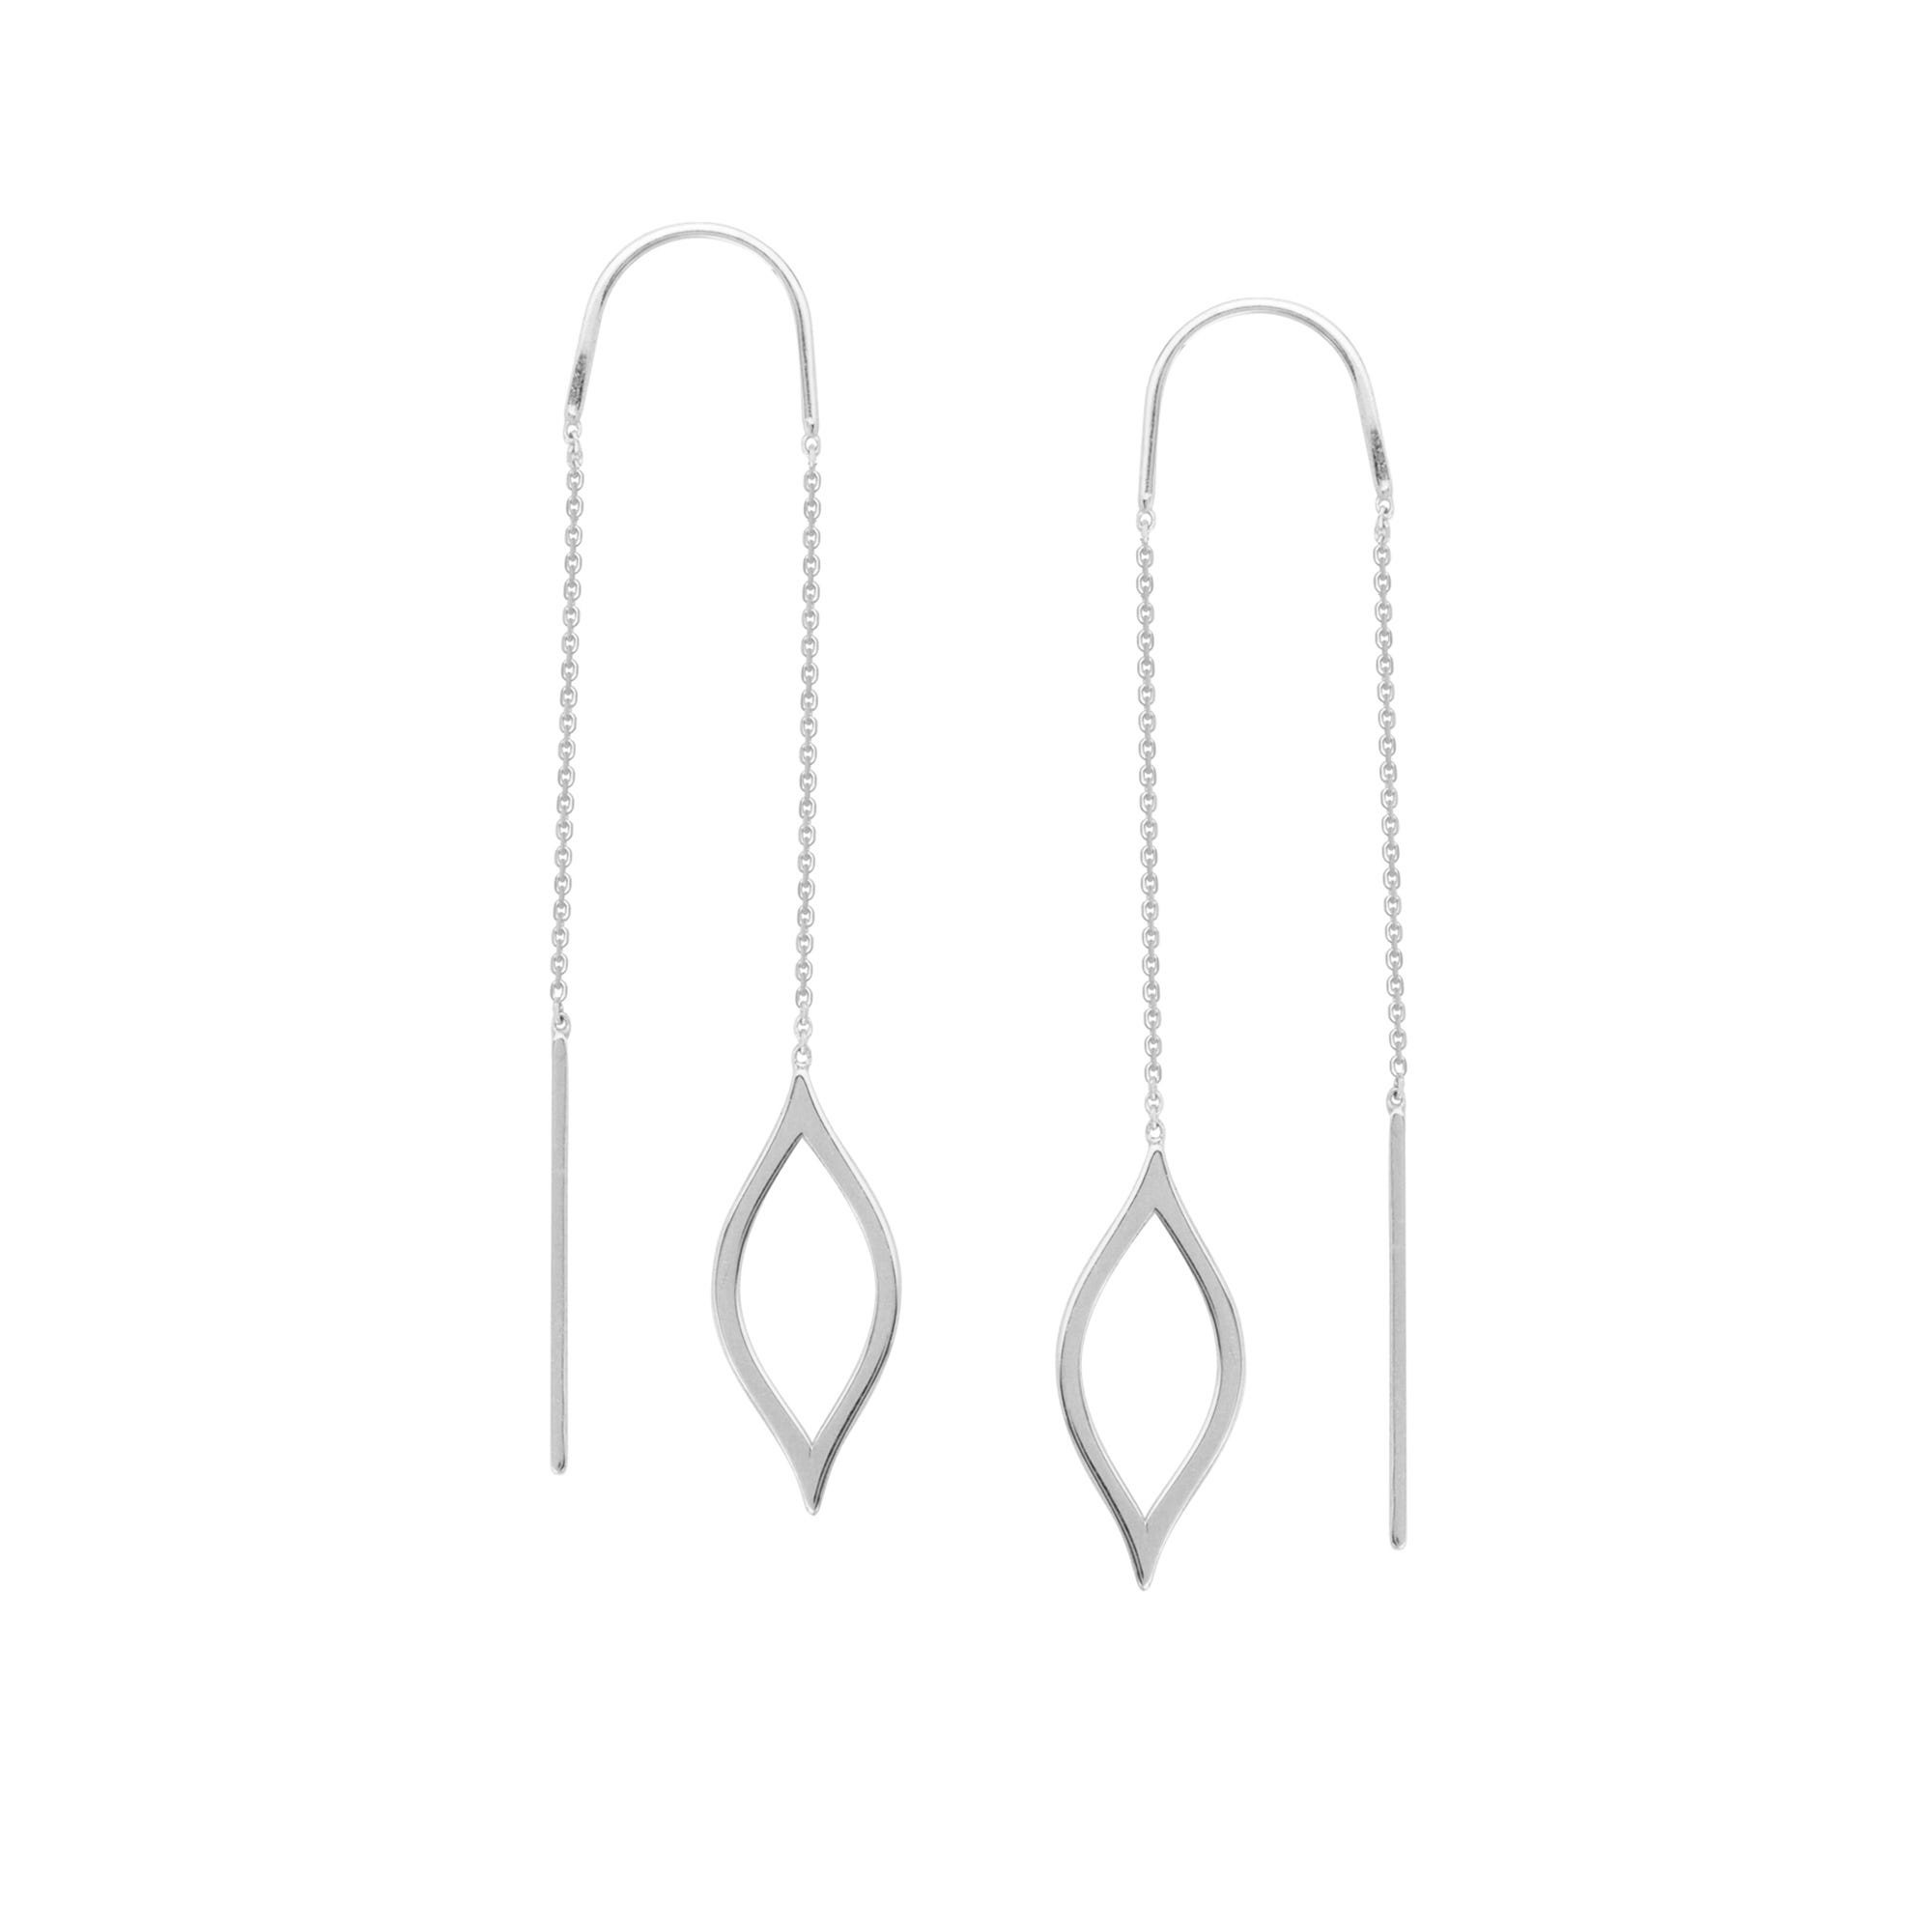 Fancy Marquise Threaded Earrings in 14k White Gold